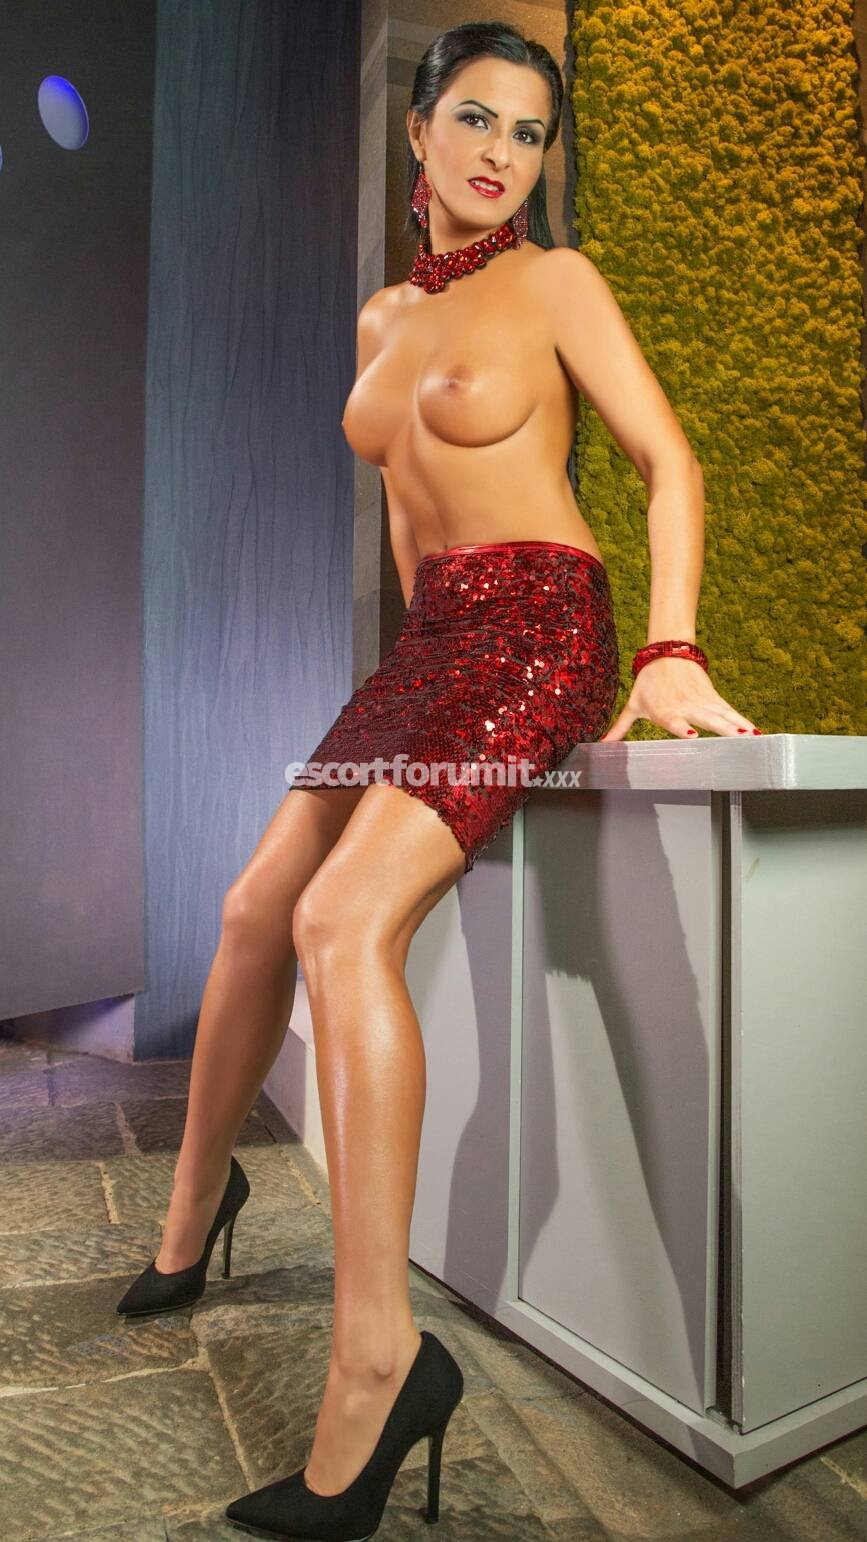 girl novara escortforum desenzano